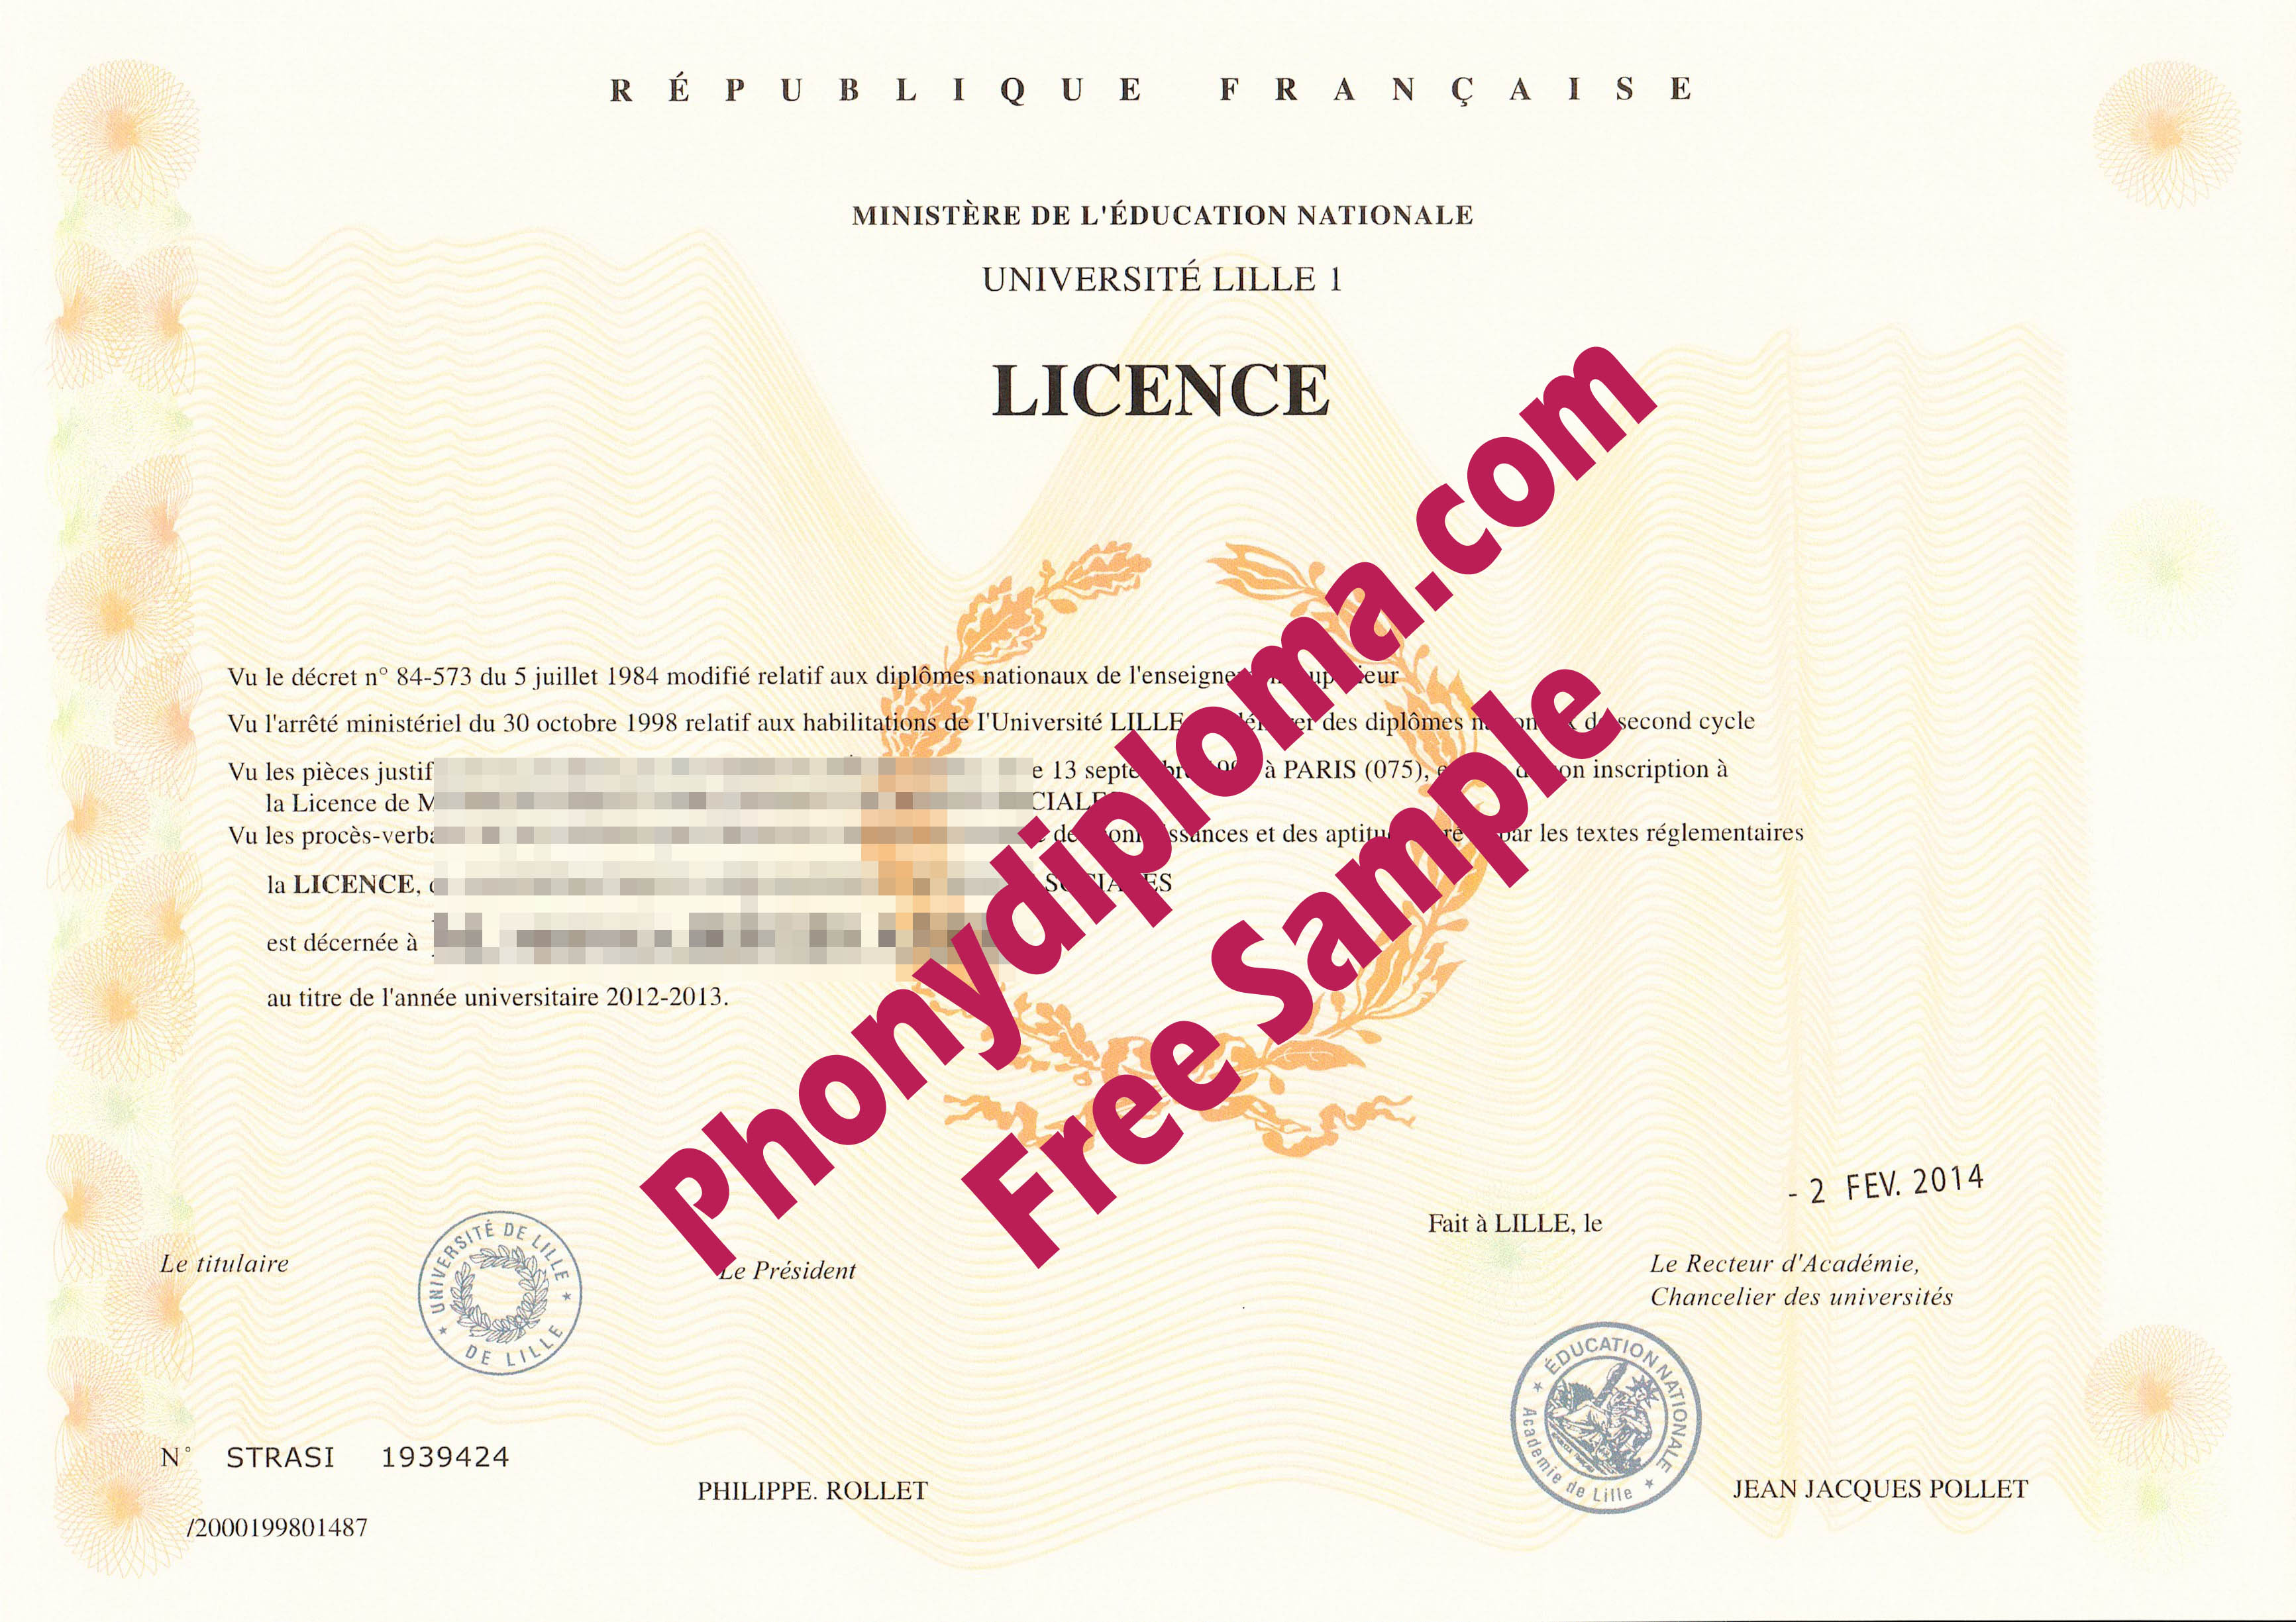 Universite Lille 1 France Licence Scan Free Sample From Phonydiploma